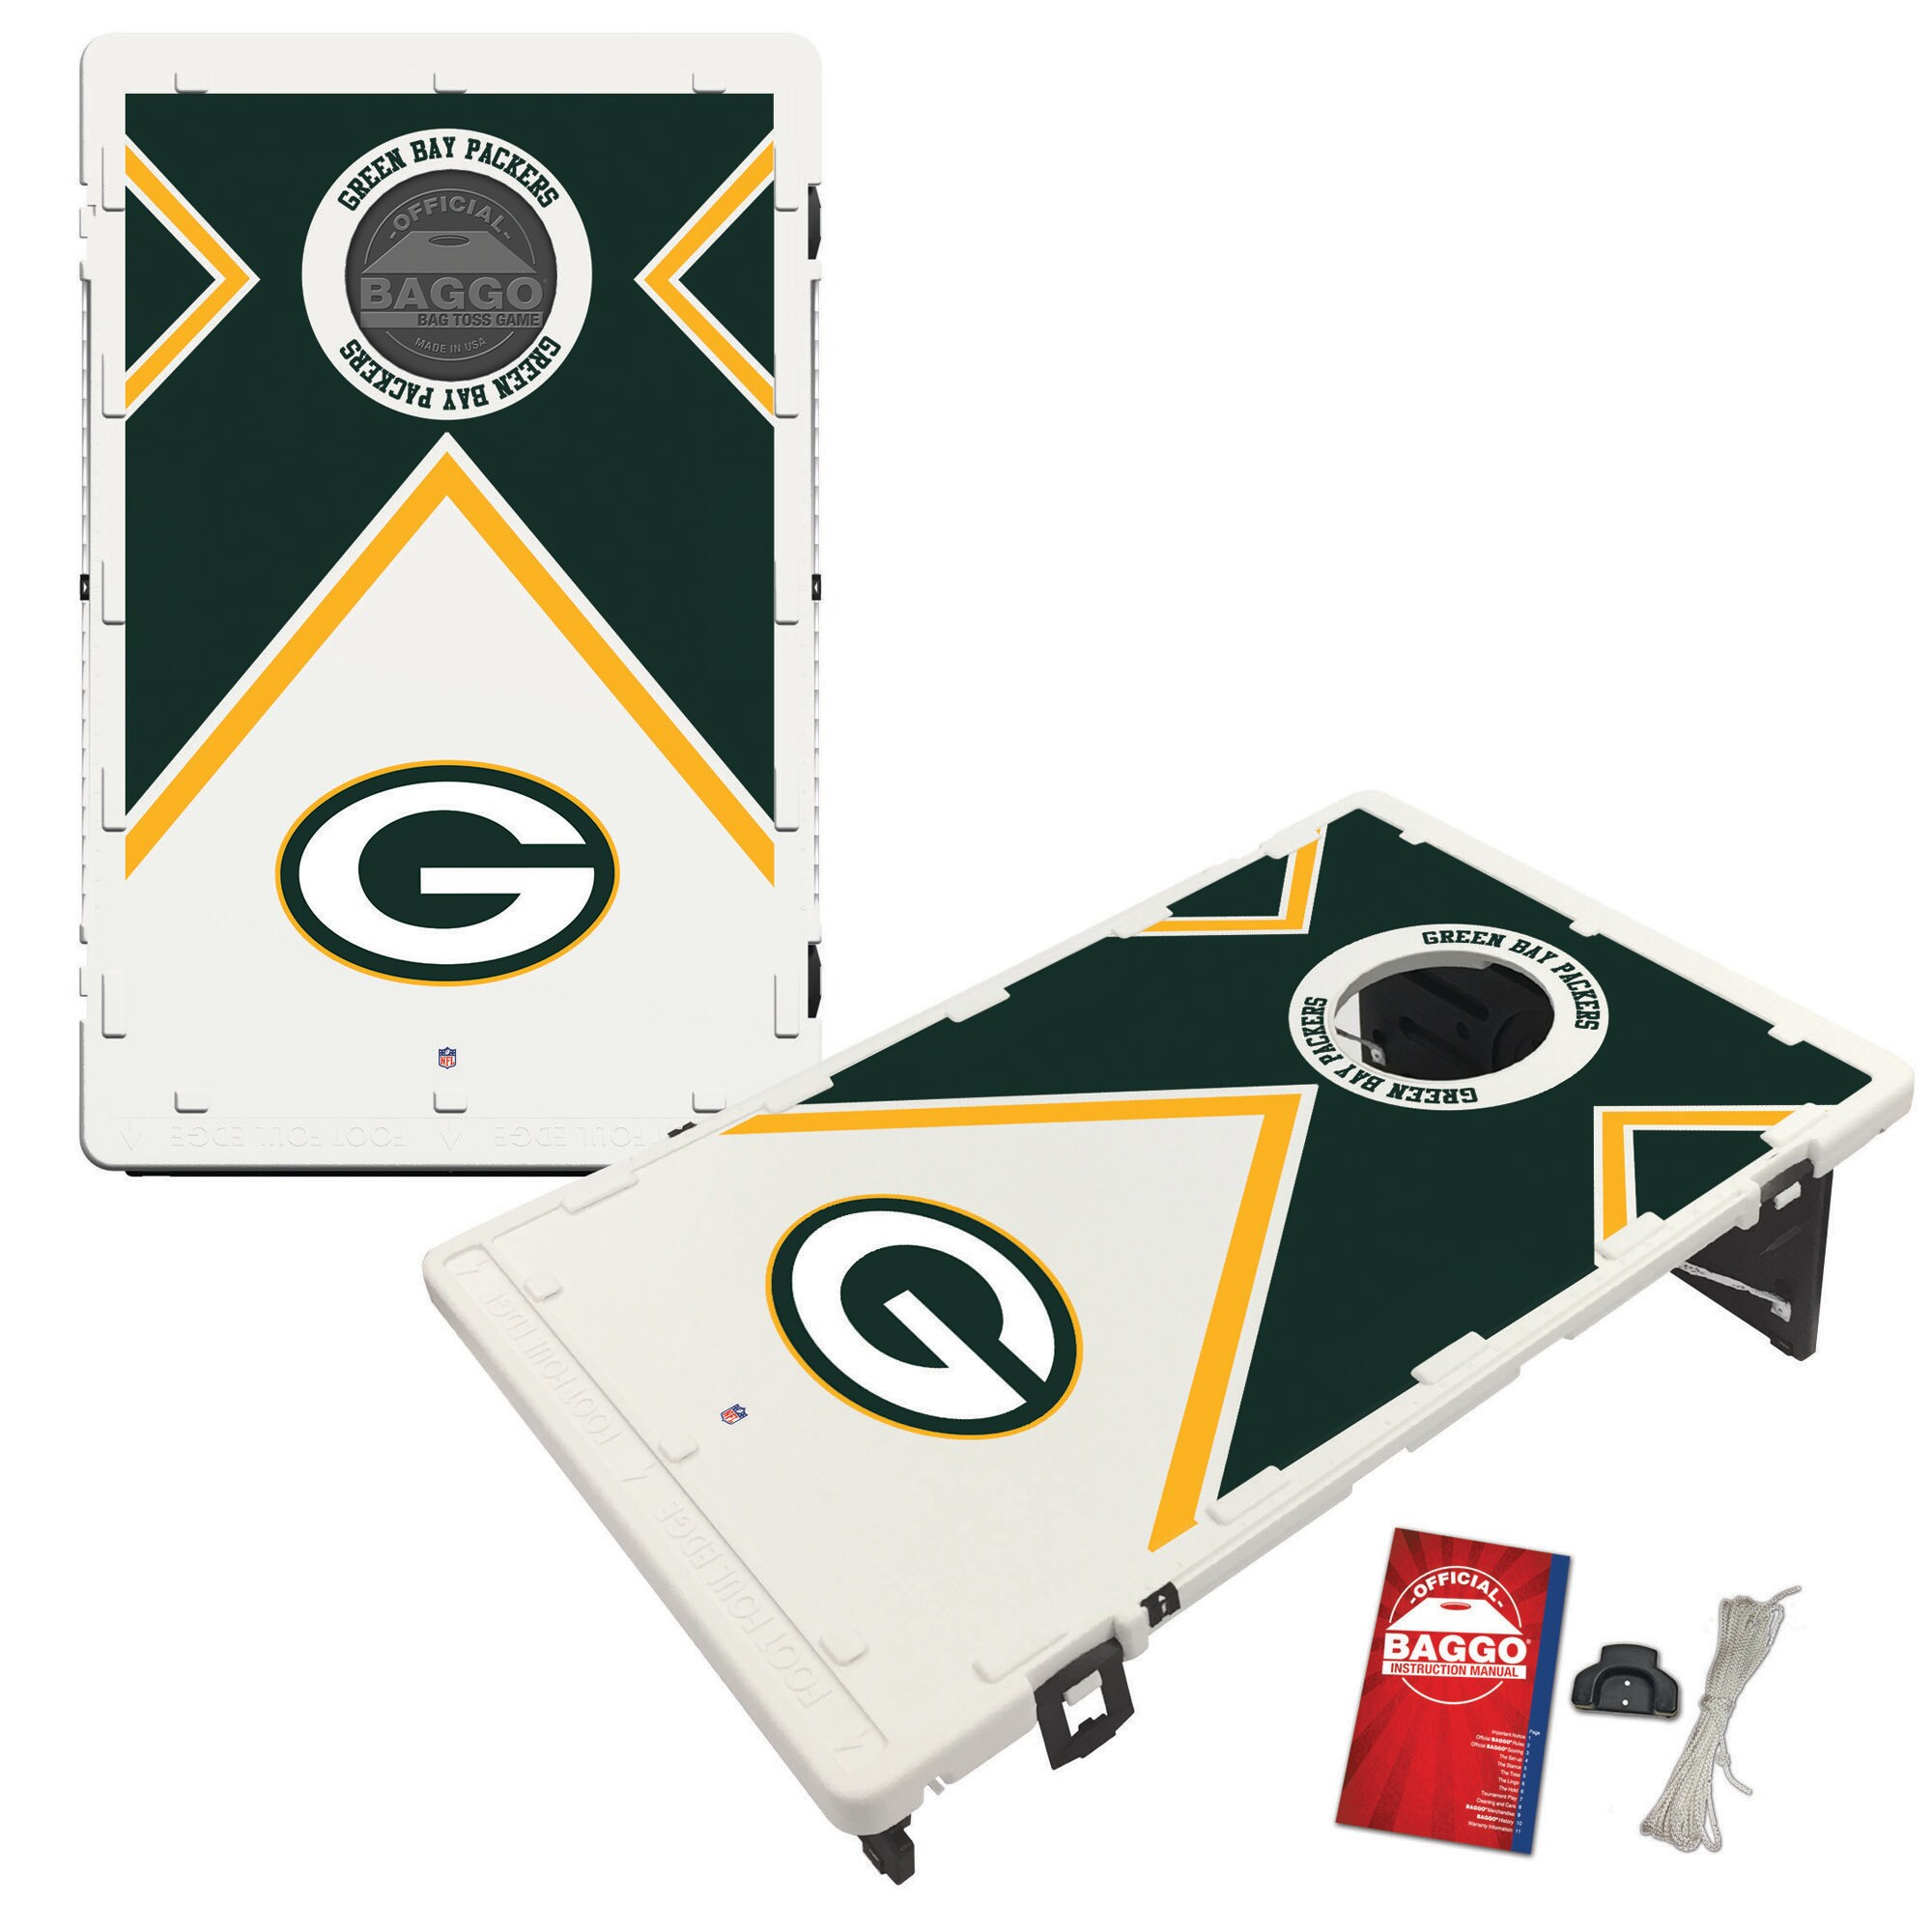 Green Bay Packers 2' x 3' BAGGO Vintage Cornhole Board Tailgate Toss Set